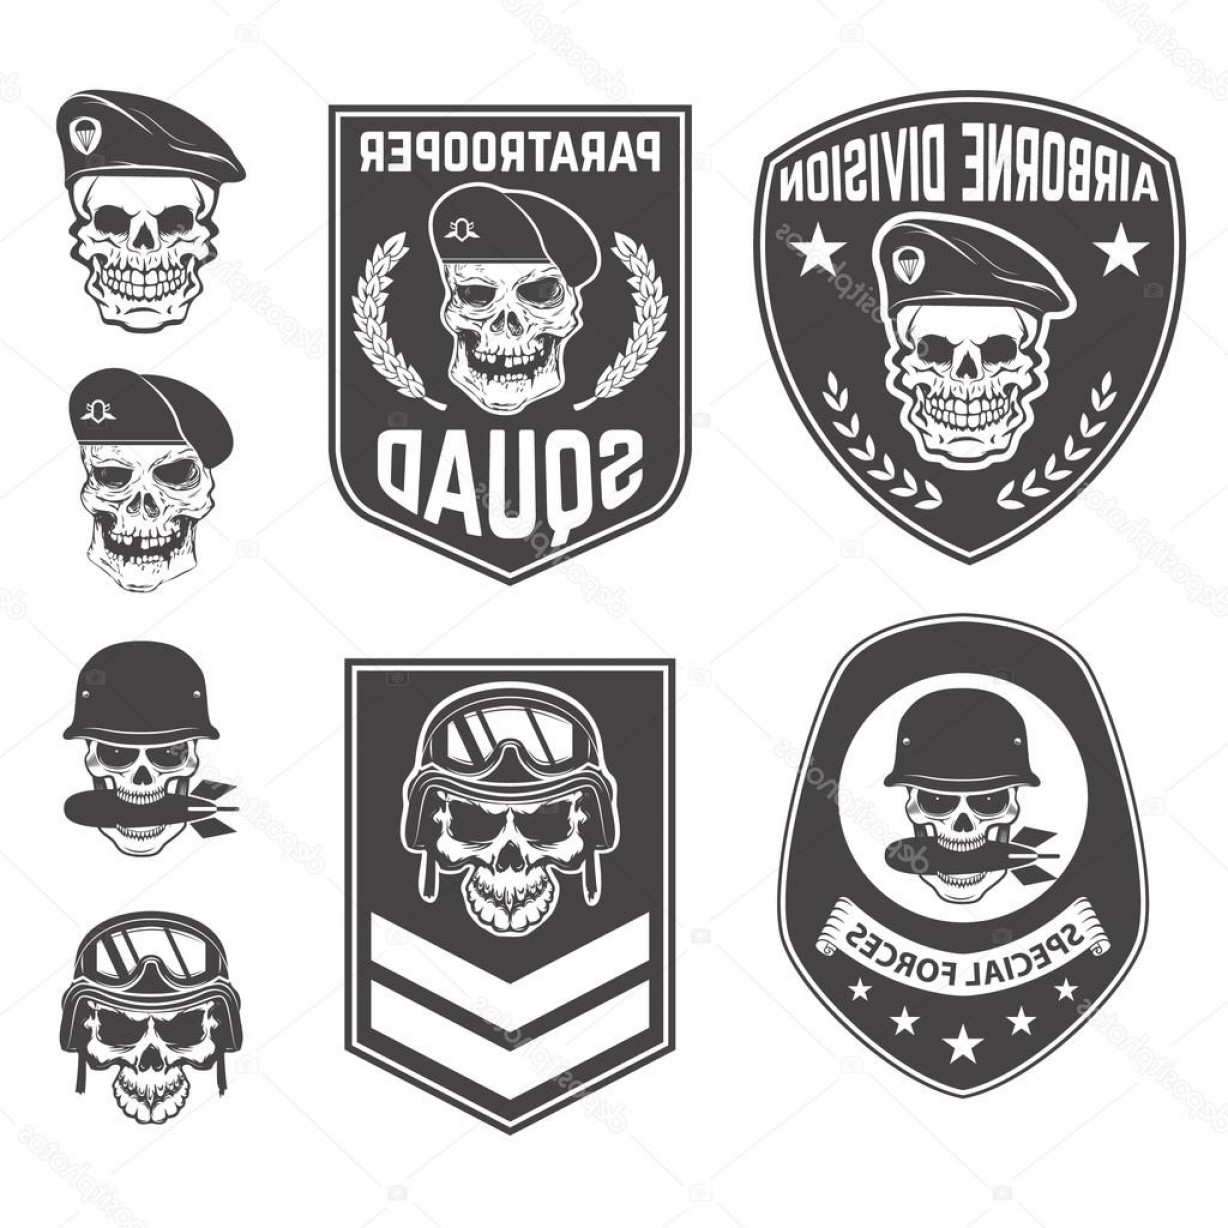 Distressed Football Helmet Vector: Stock Illustration Set Of Military Emblems And